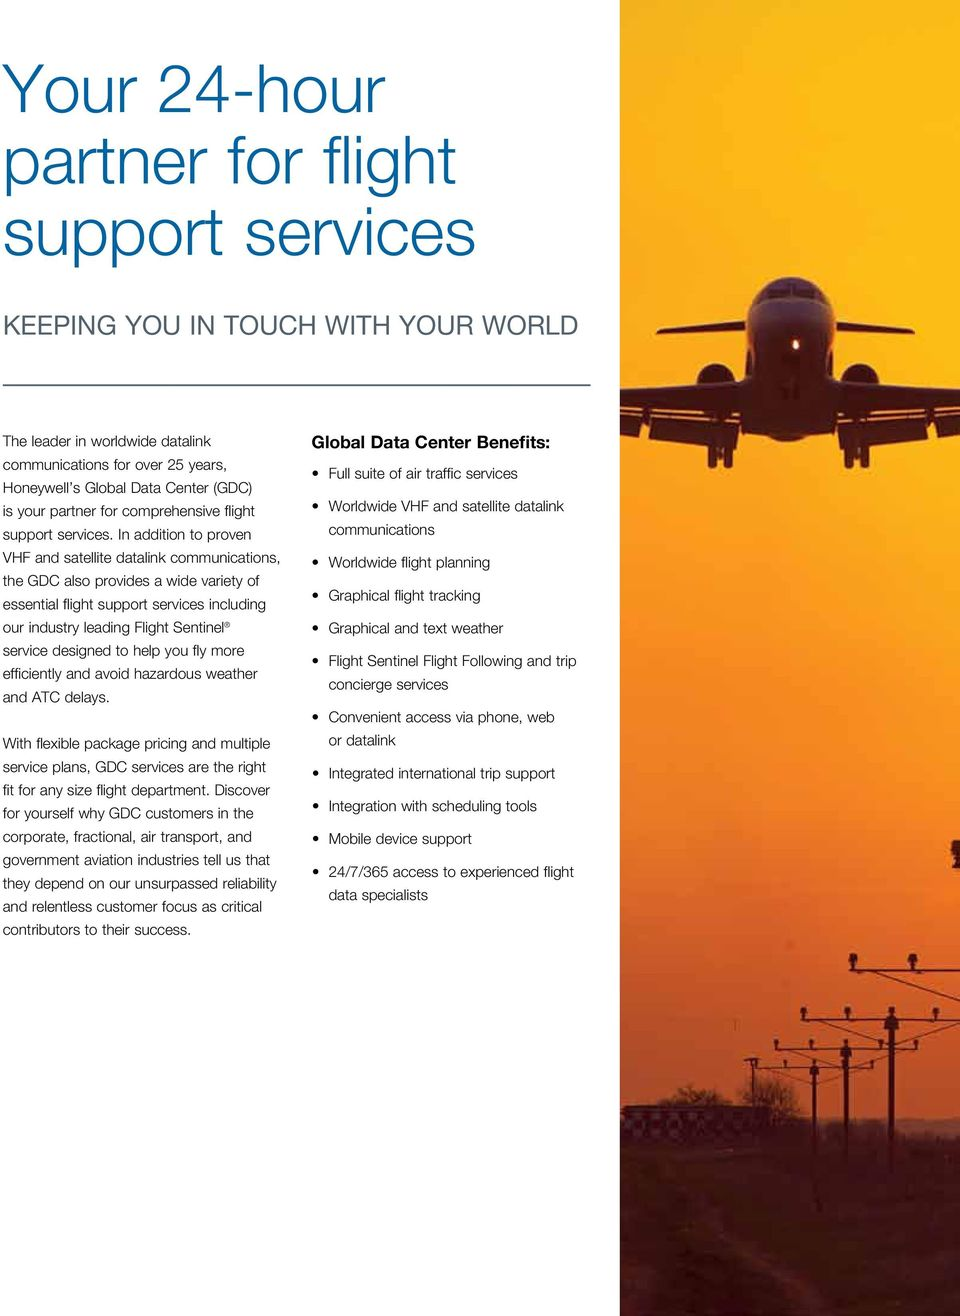 In addition to proven VHF and satellite datalink communications, the GDC also provides a wide variety of essential flight support services including our industry leading Flight Sentinel service